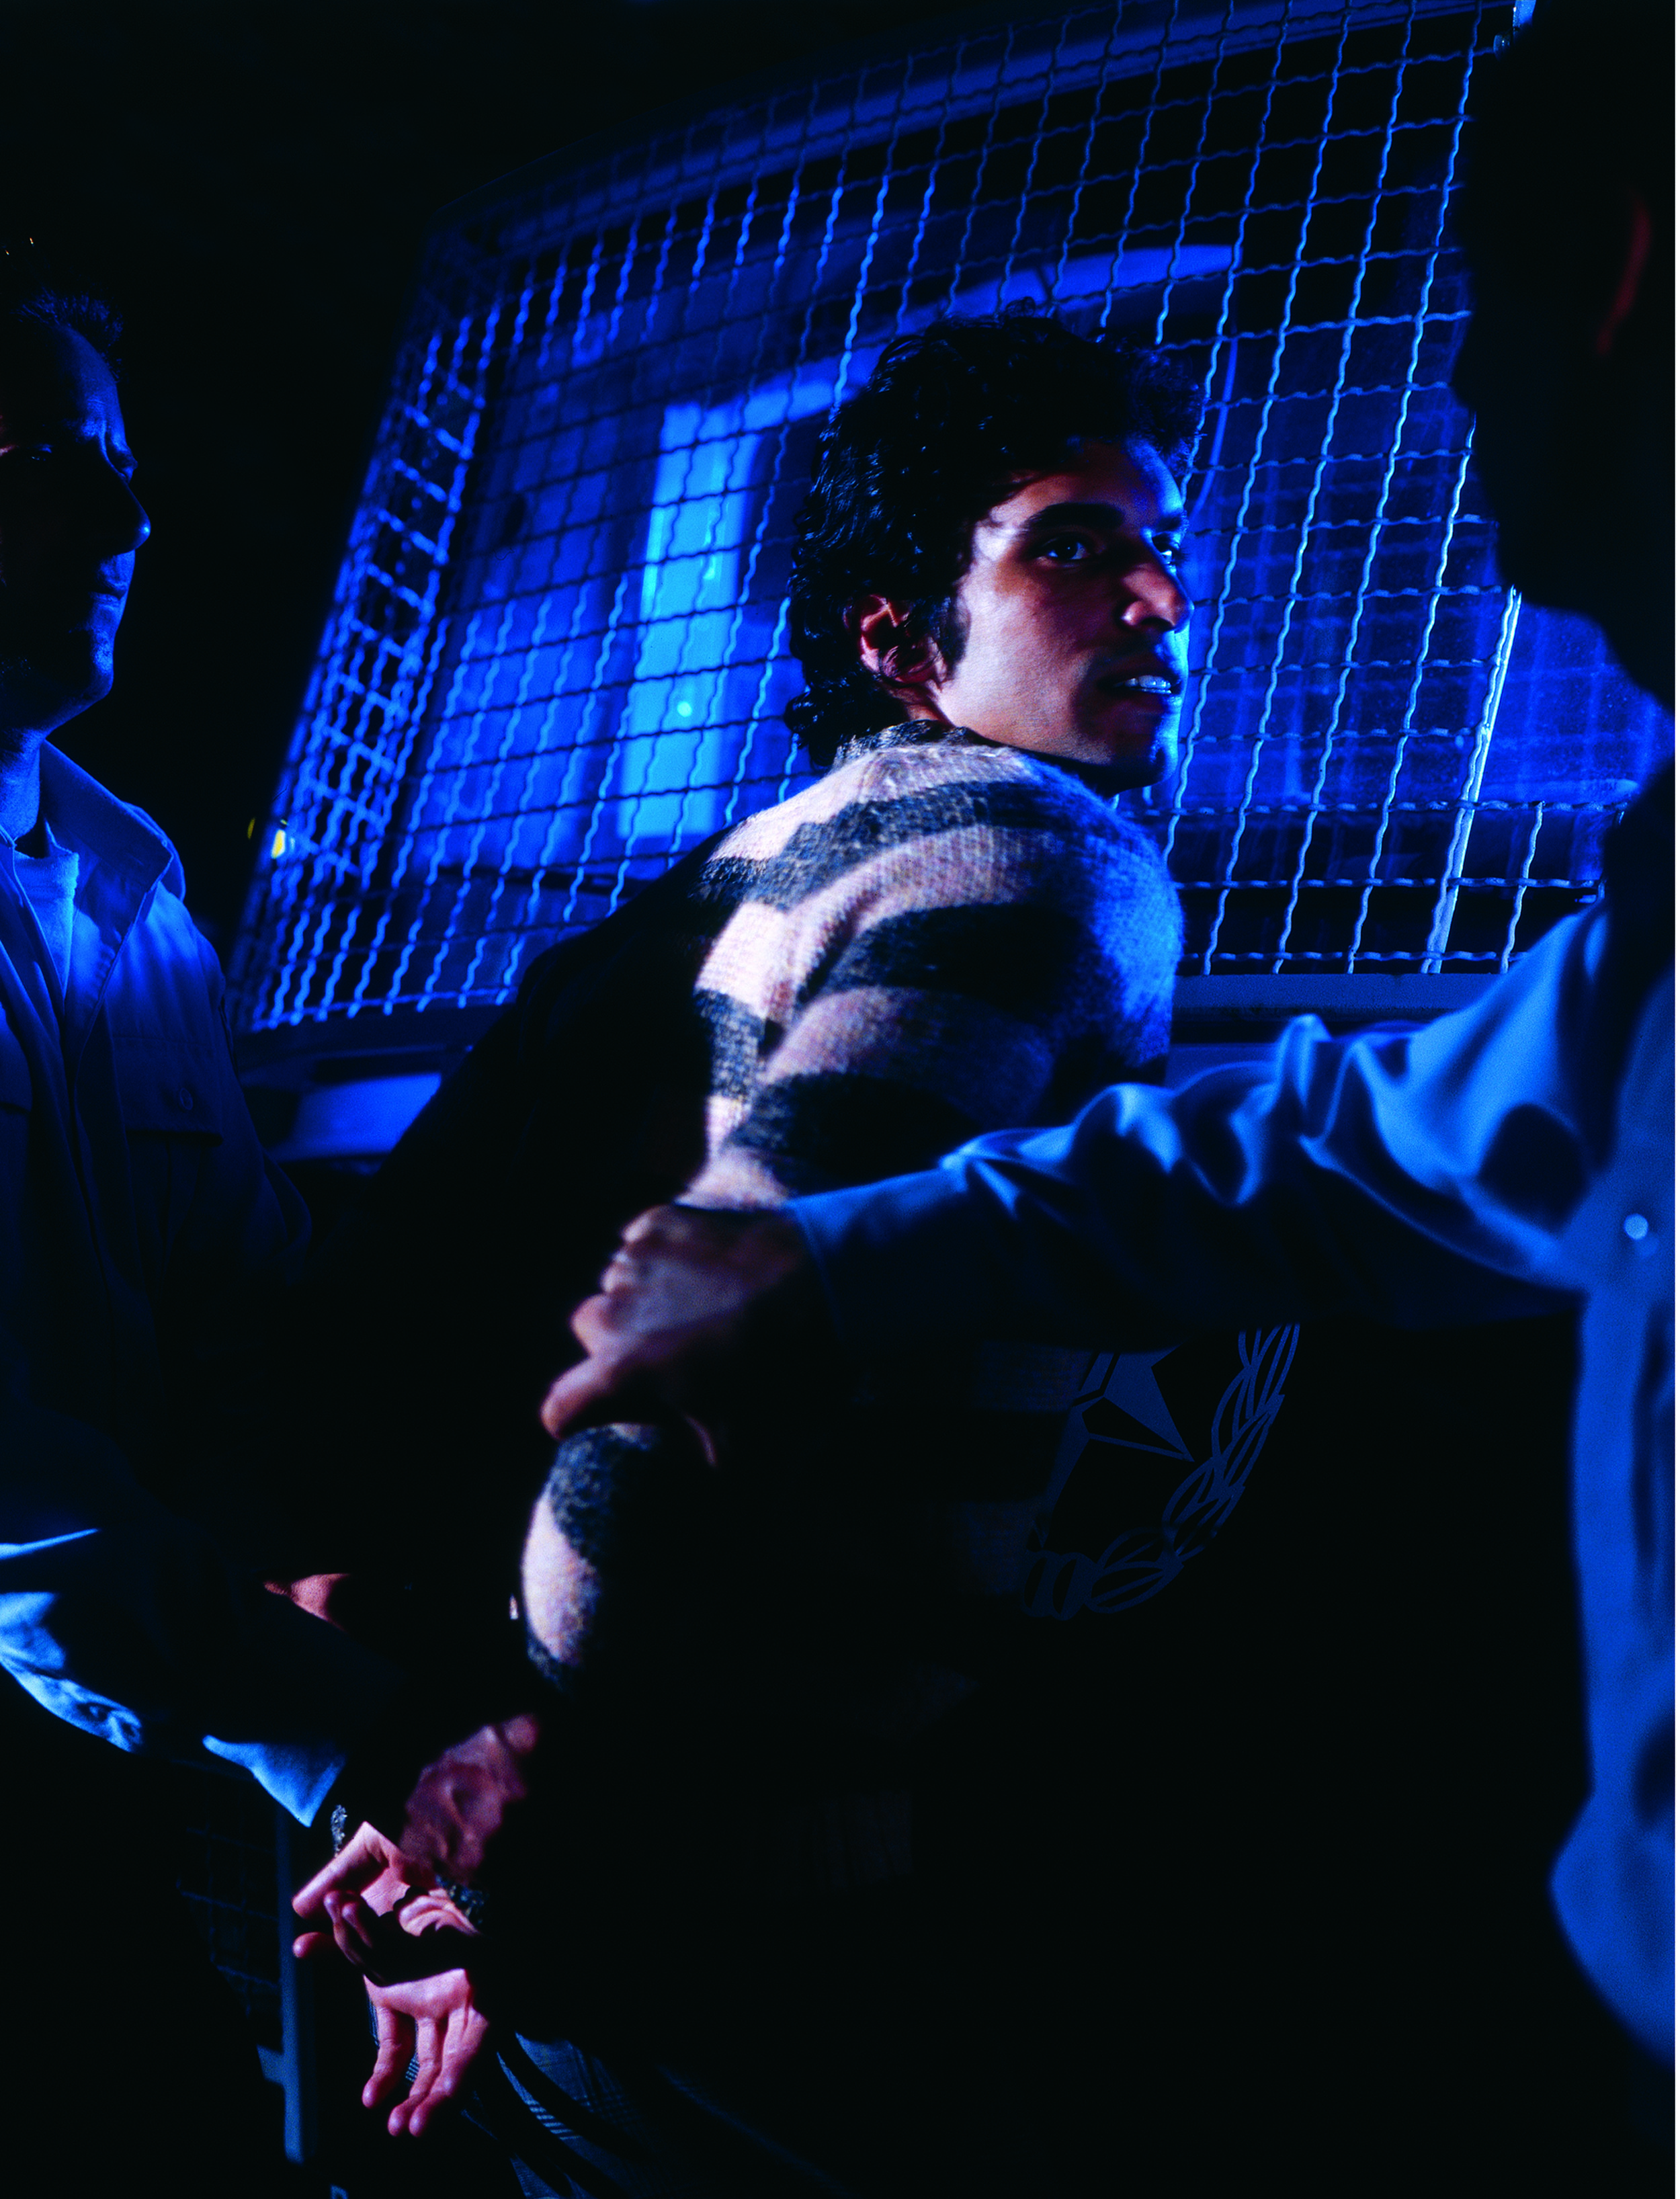 """""""Untitled"""" from the """"Prisoners"""" series, 2003 color photograph mounted on PVC edition of 10 123 x 90 cm - 48 3/8 x 35 3/8 inches"""